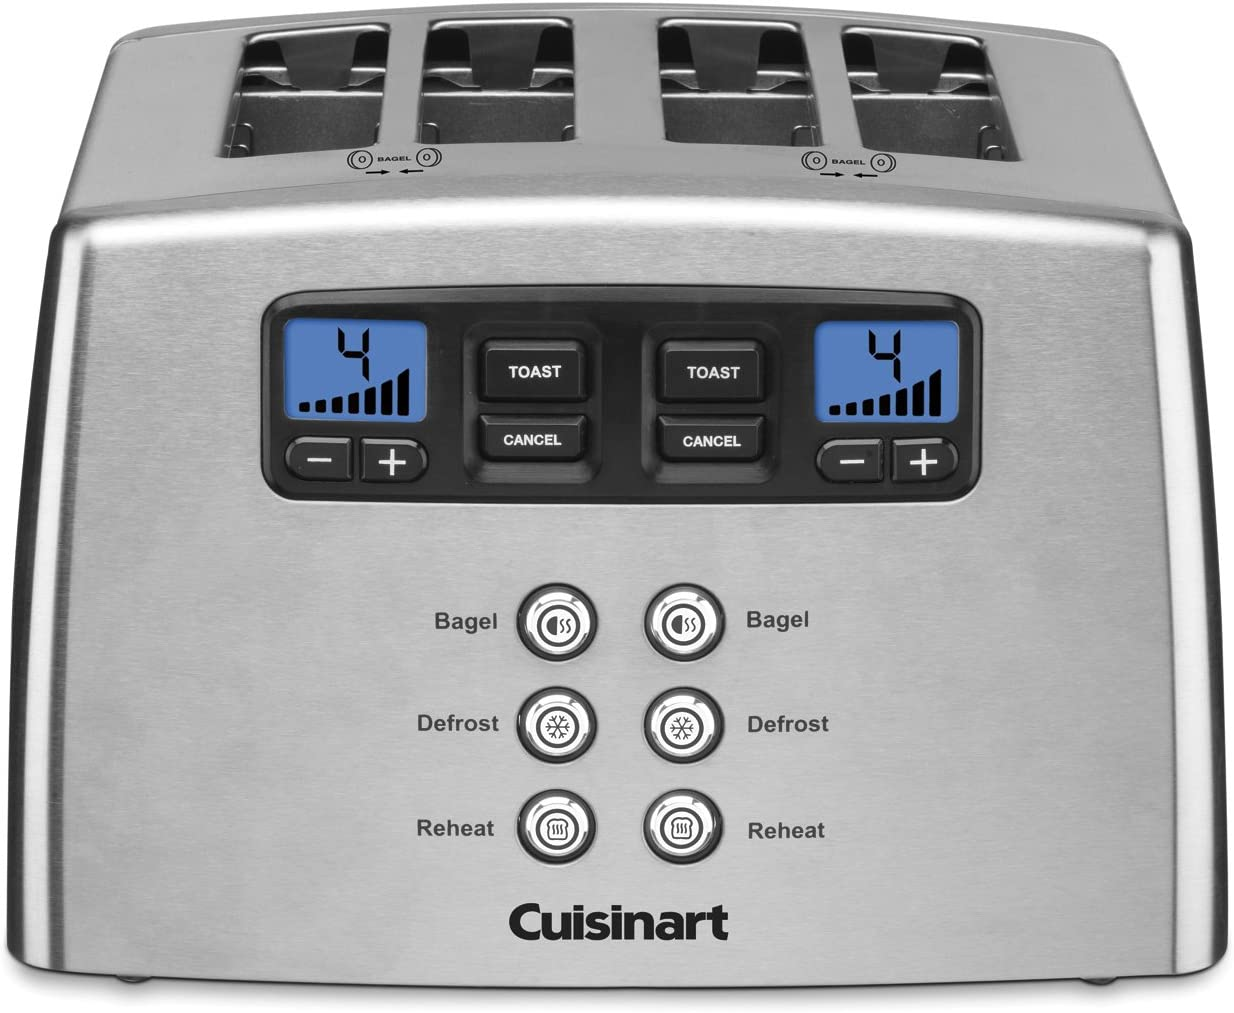 Cuisinart CPT 440 Touch